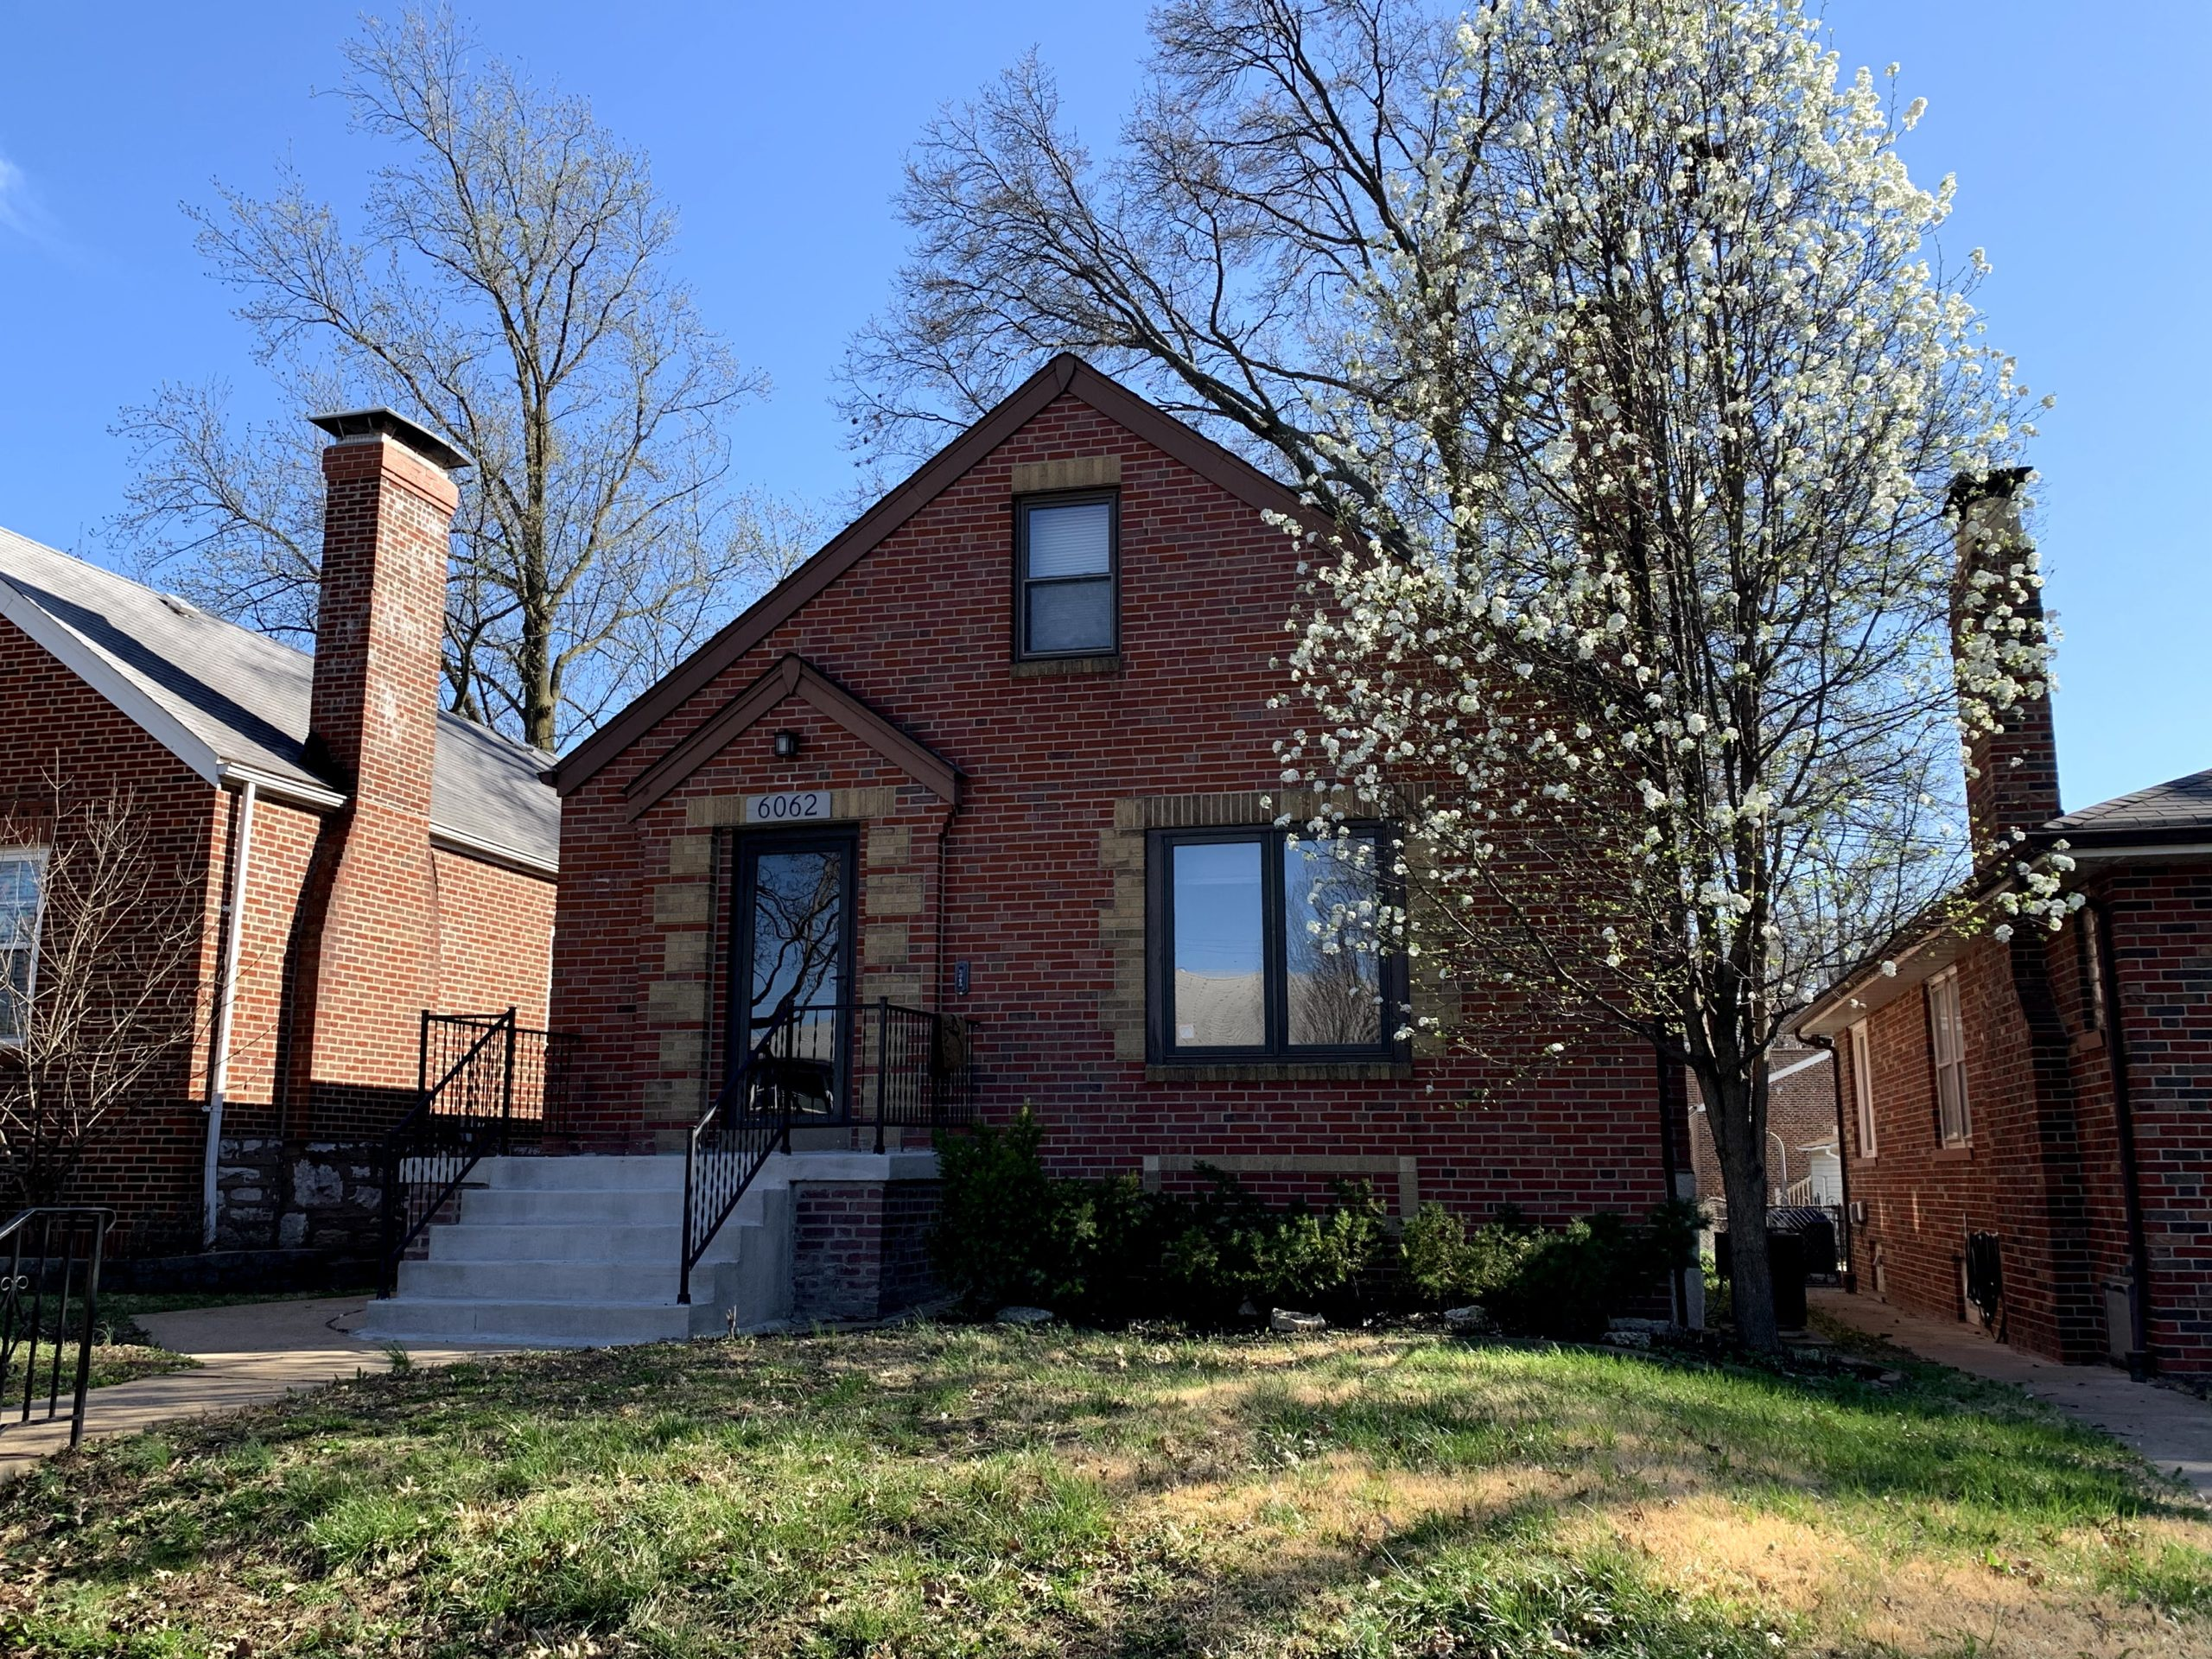 6062 Sutherland Ave St Louis MO 63109 / St Louis Hills